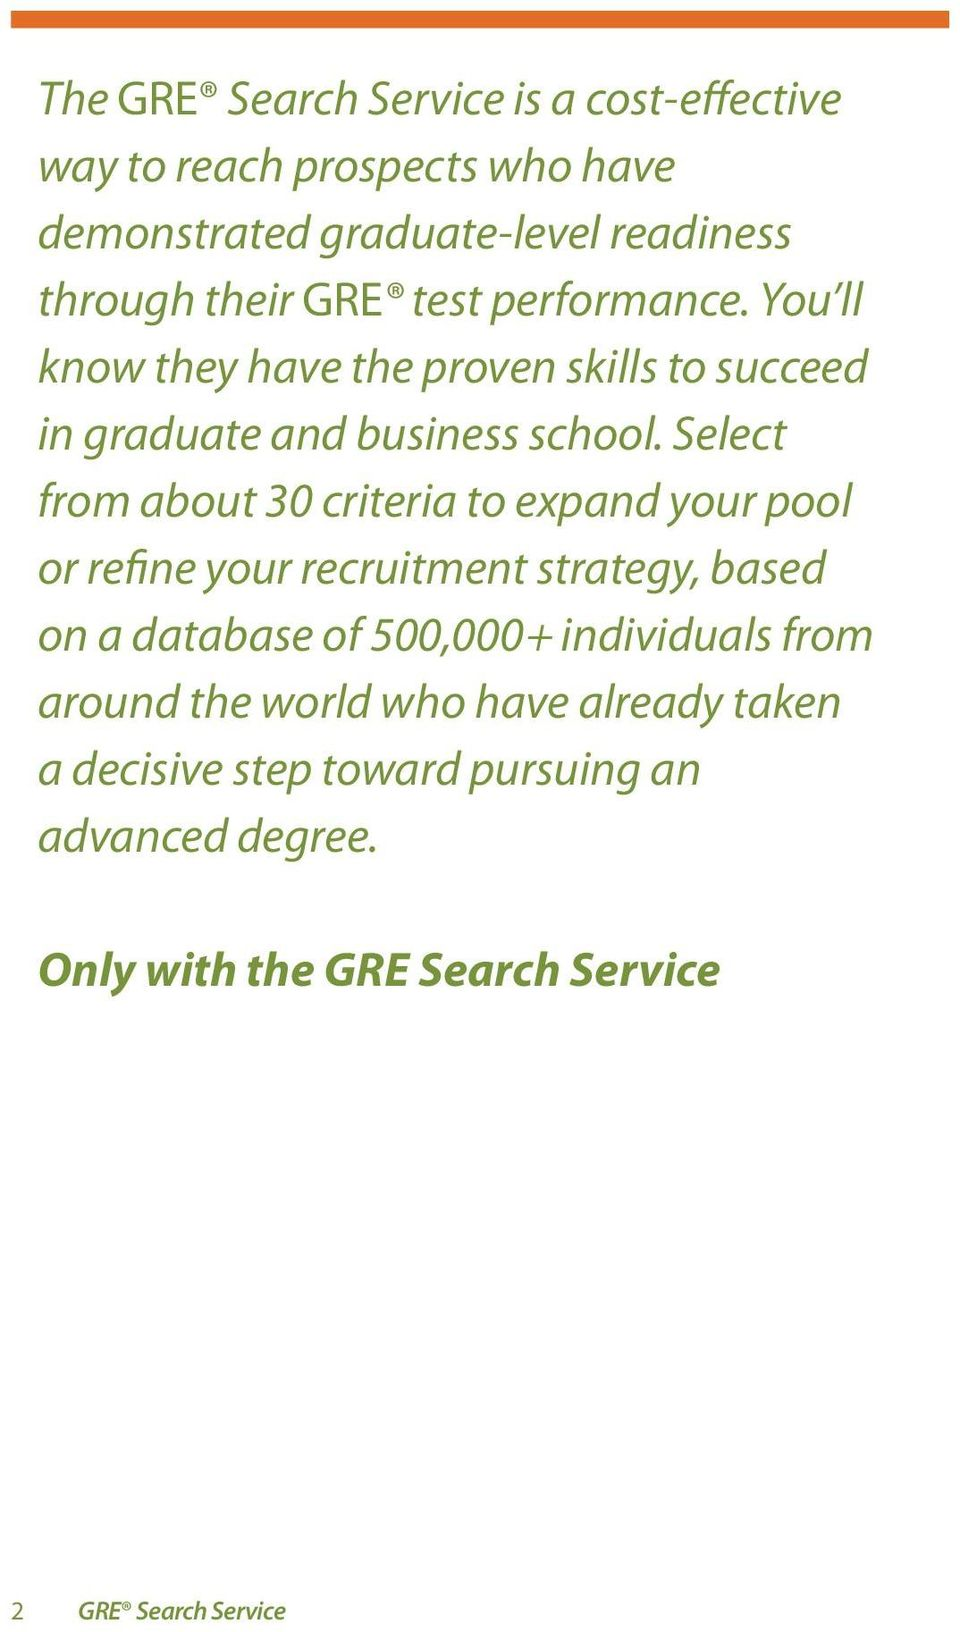 Select from about 30 criteria to expand your pool or refine your recruitment strategy, based on a database of 500,000+